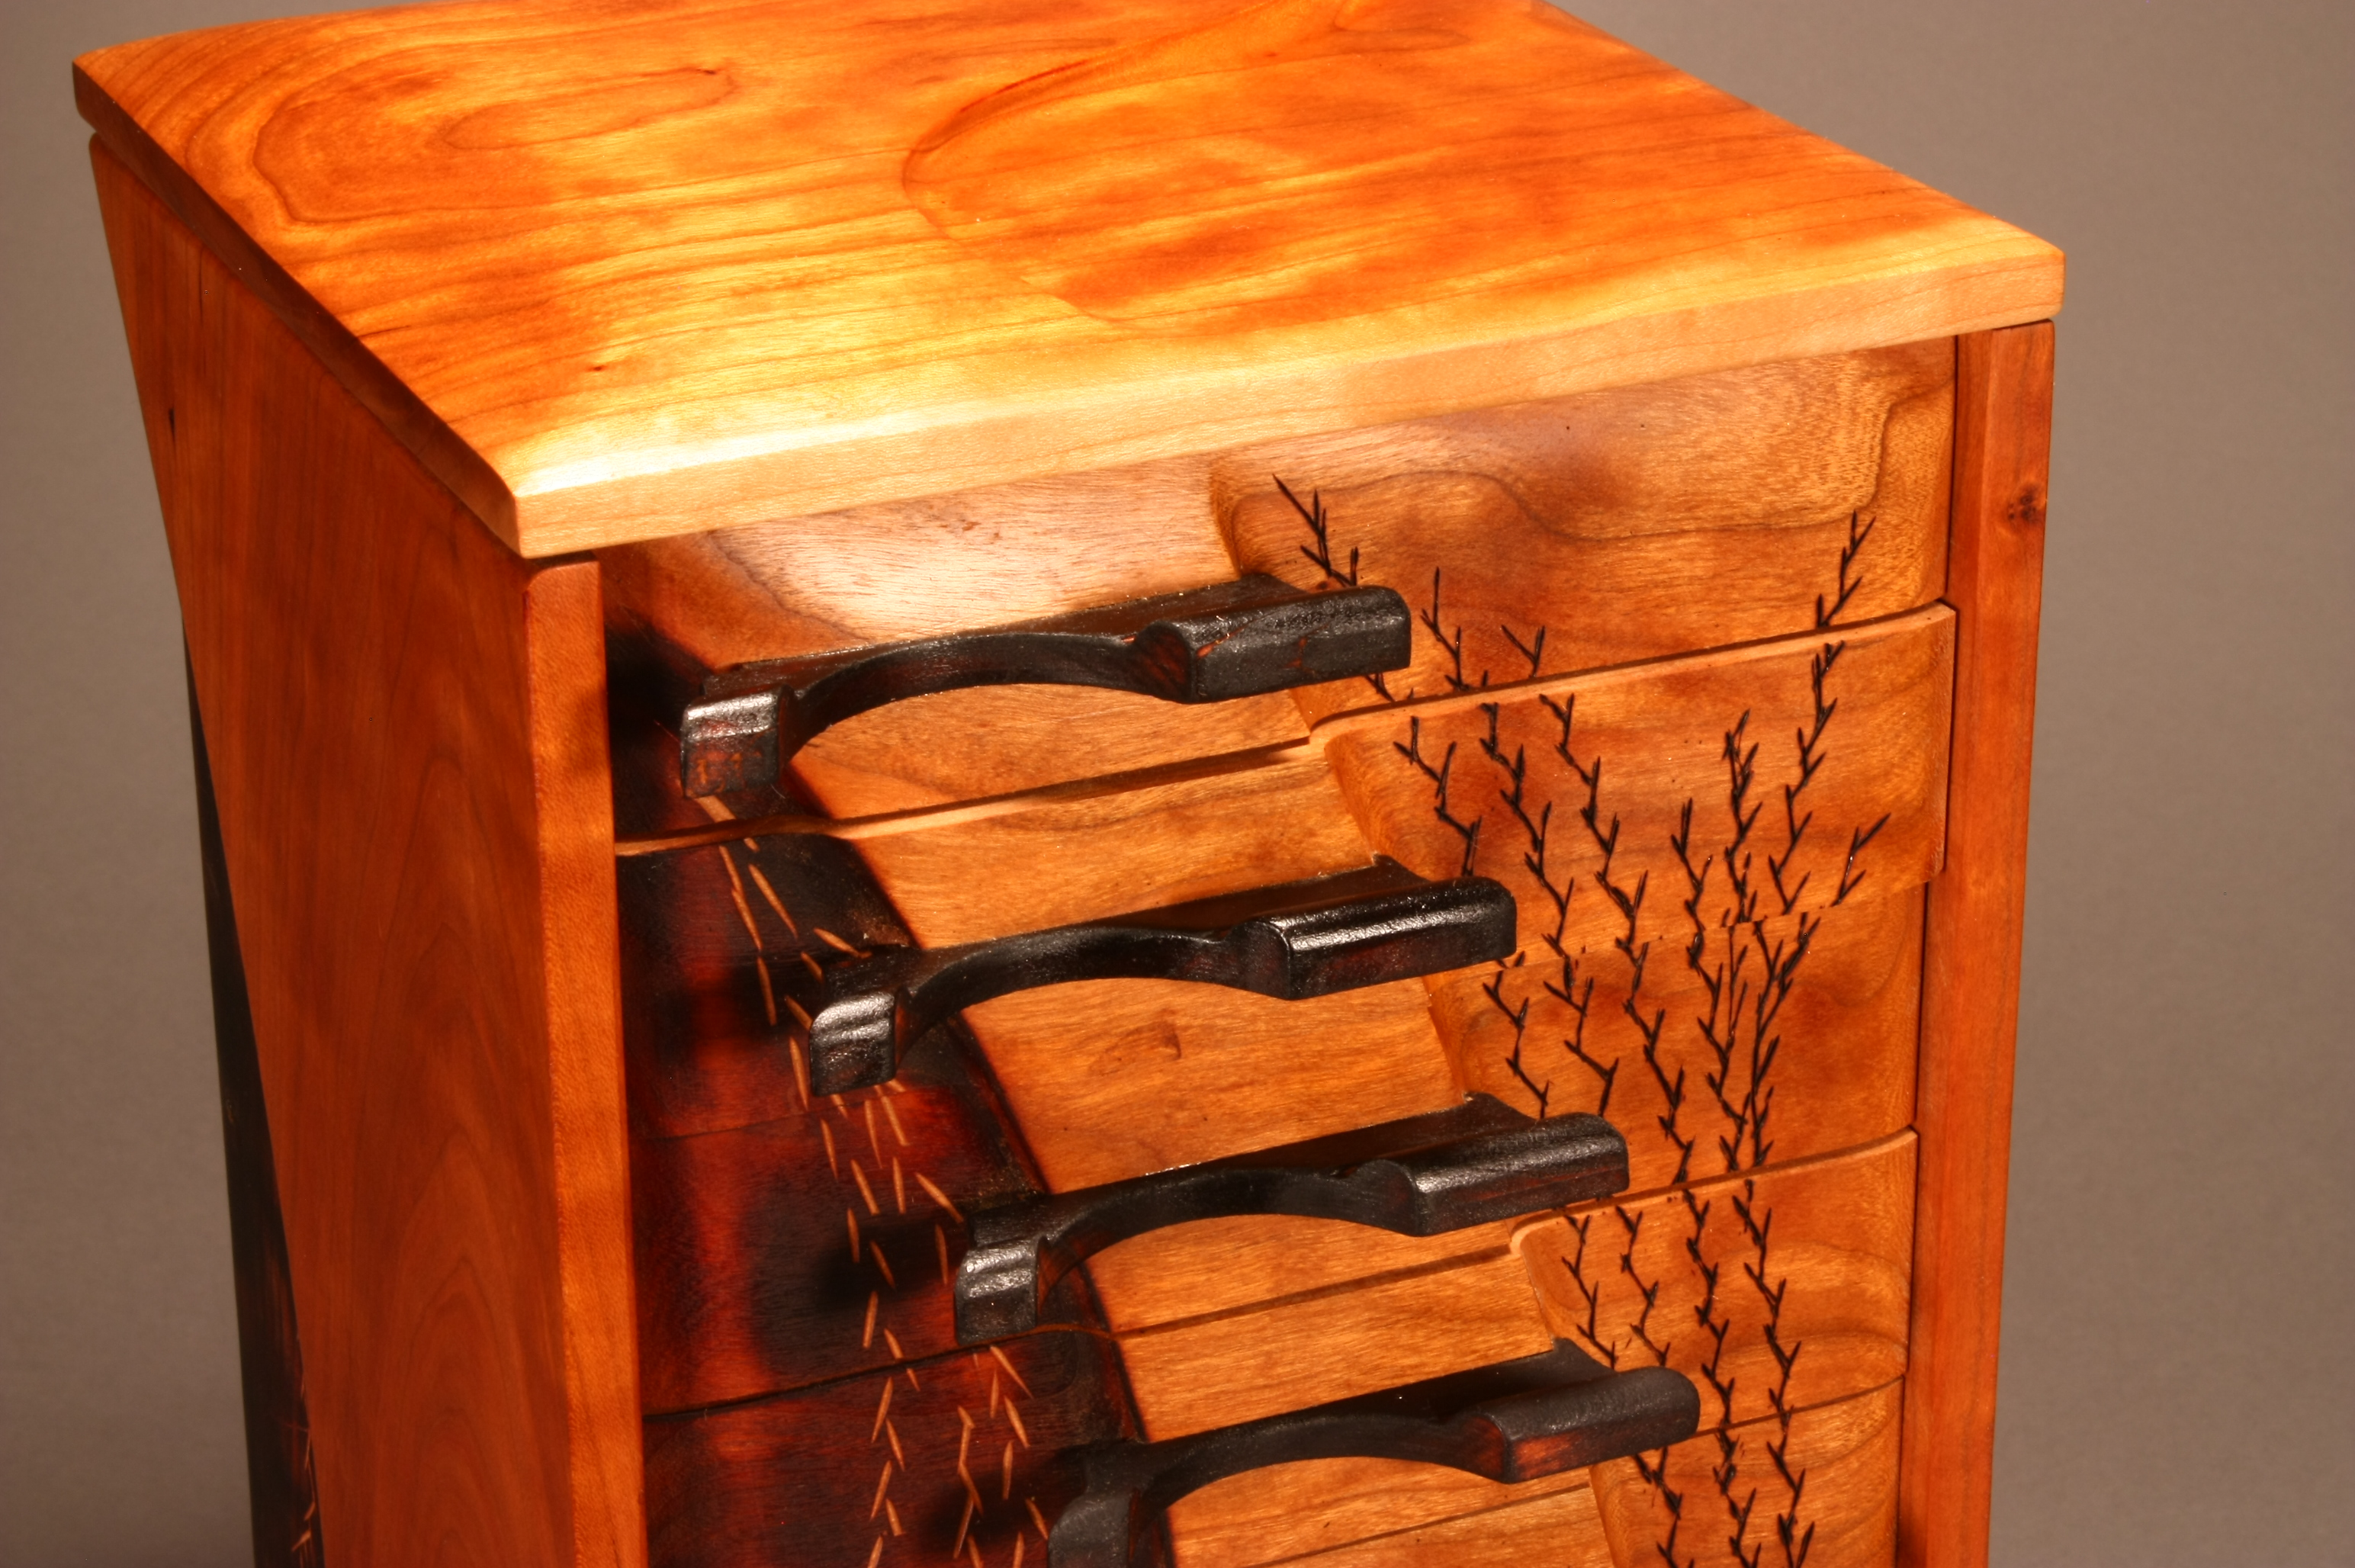 CHERRY SUITE DRAWER TOWER DETAIL